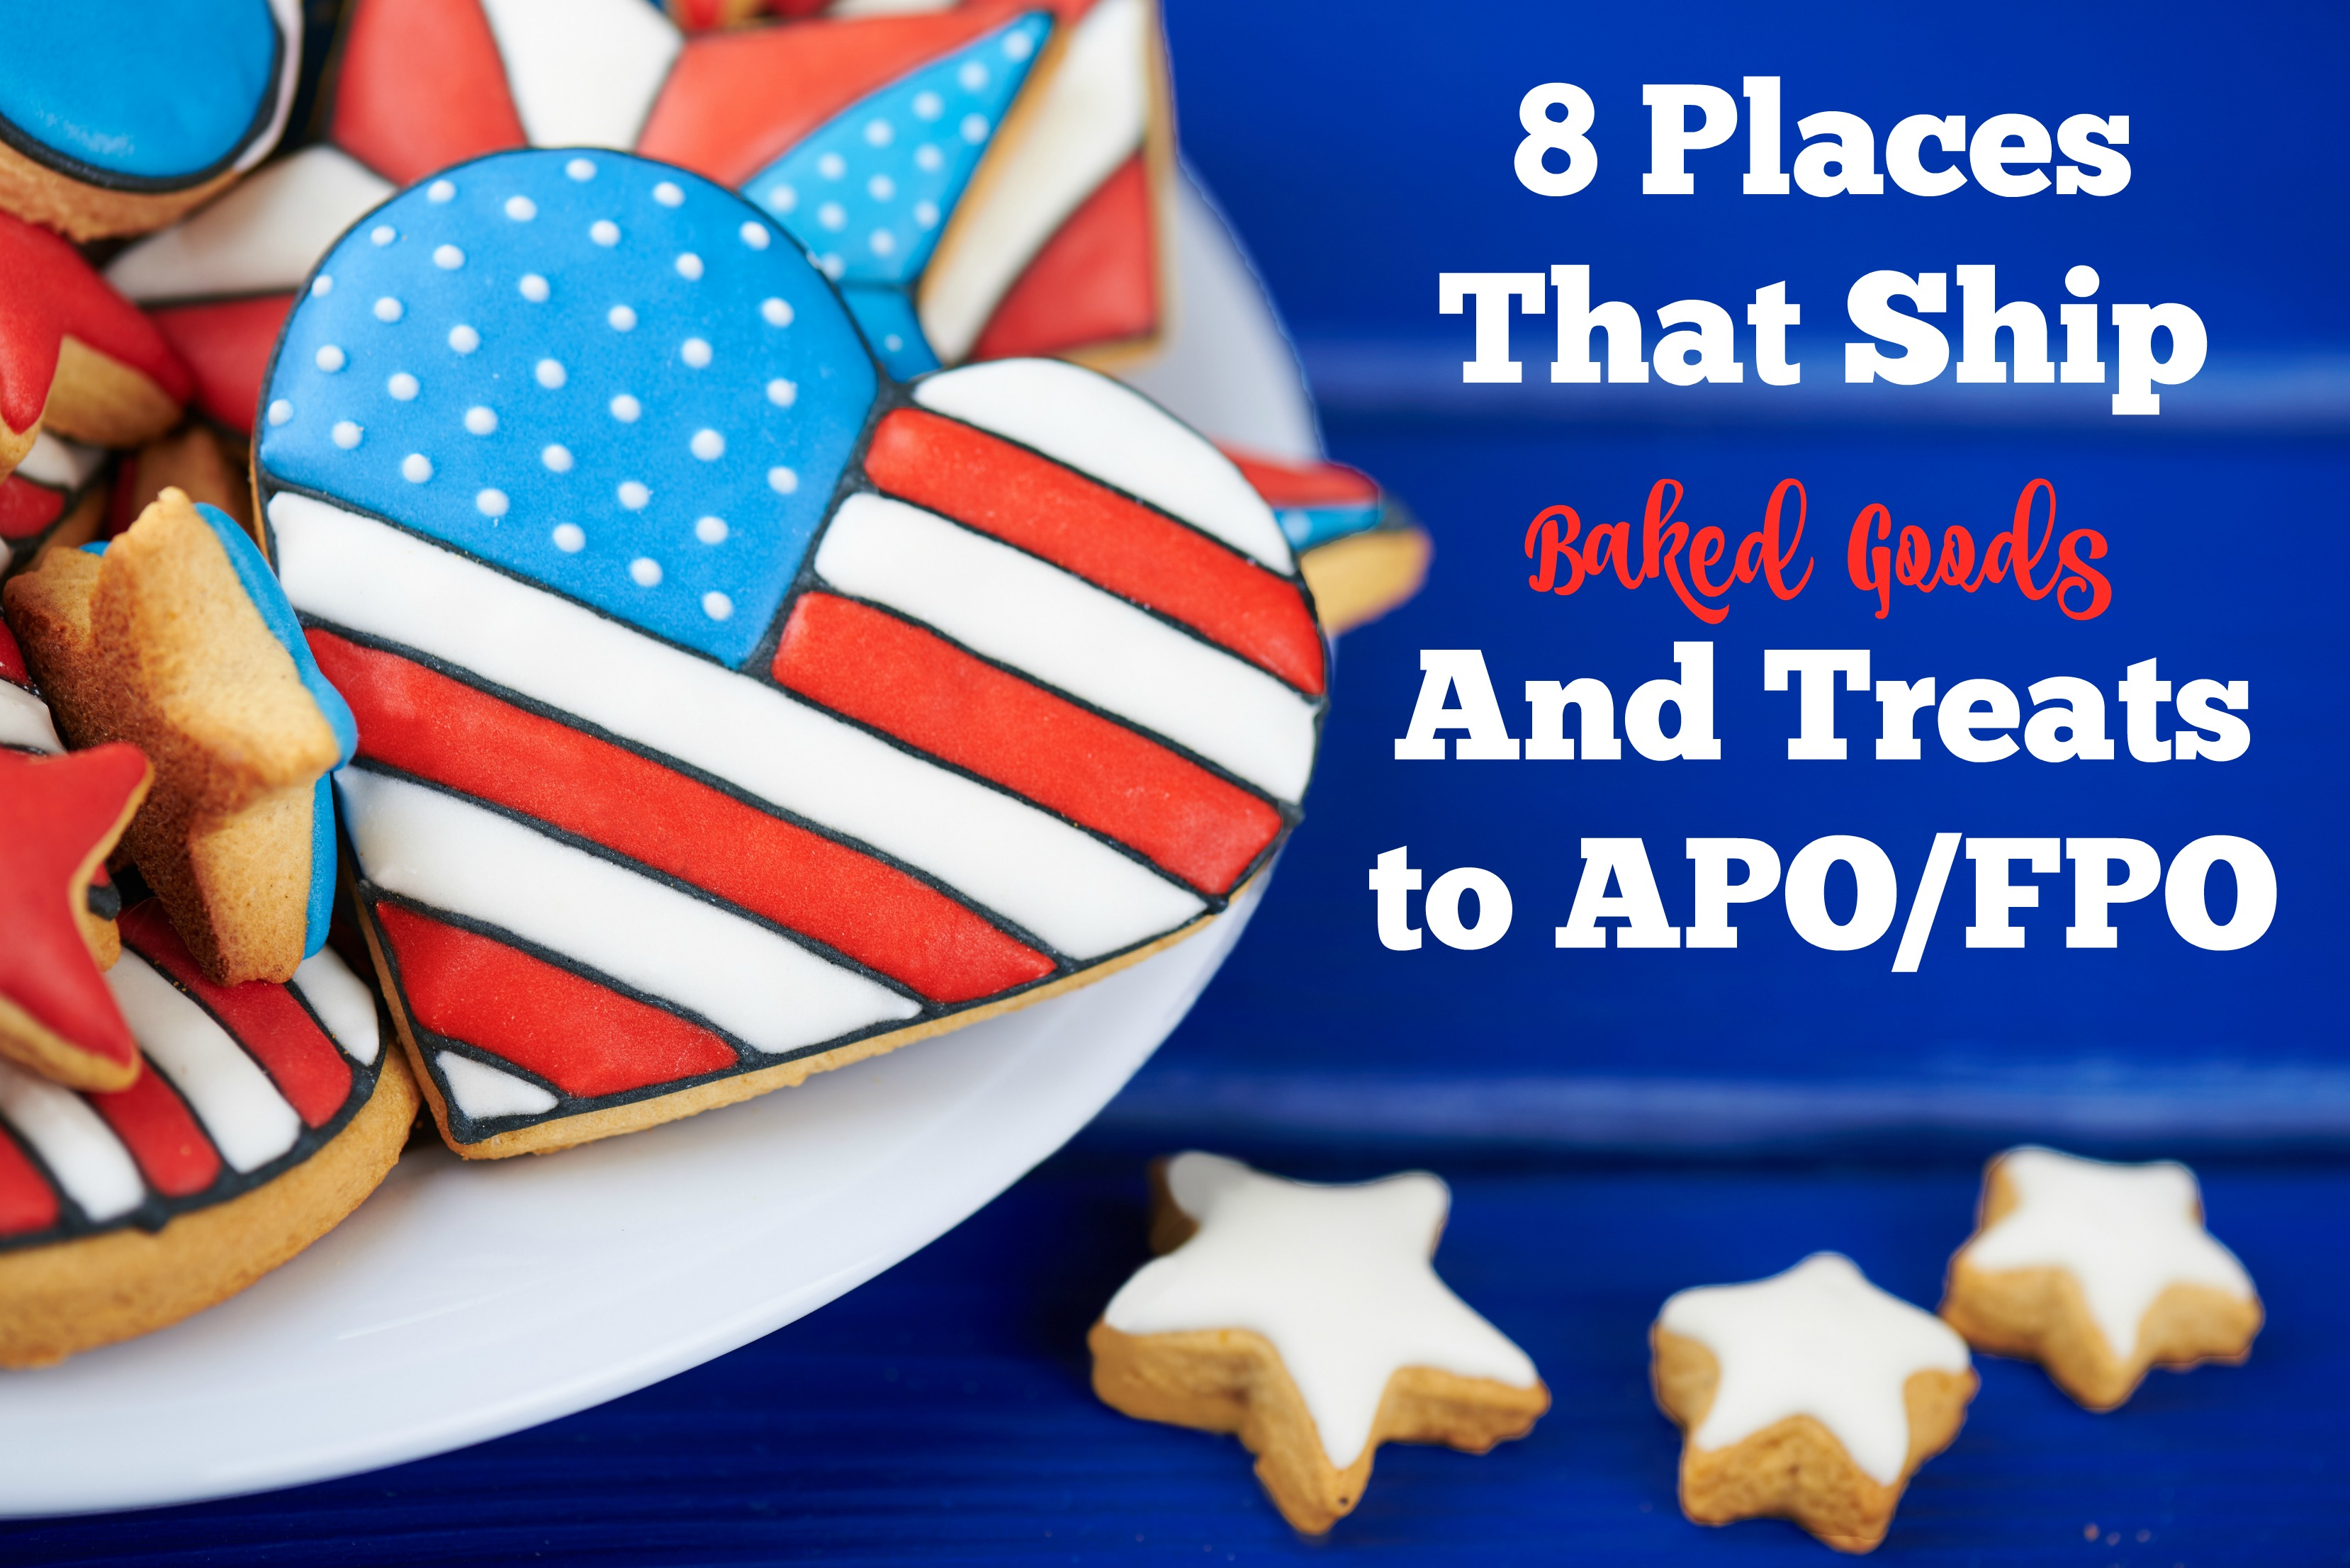 8 Places That Ship Baked Goods And Treats to APO/FPO